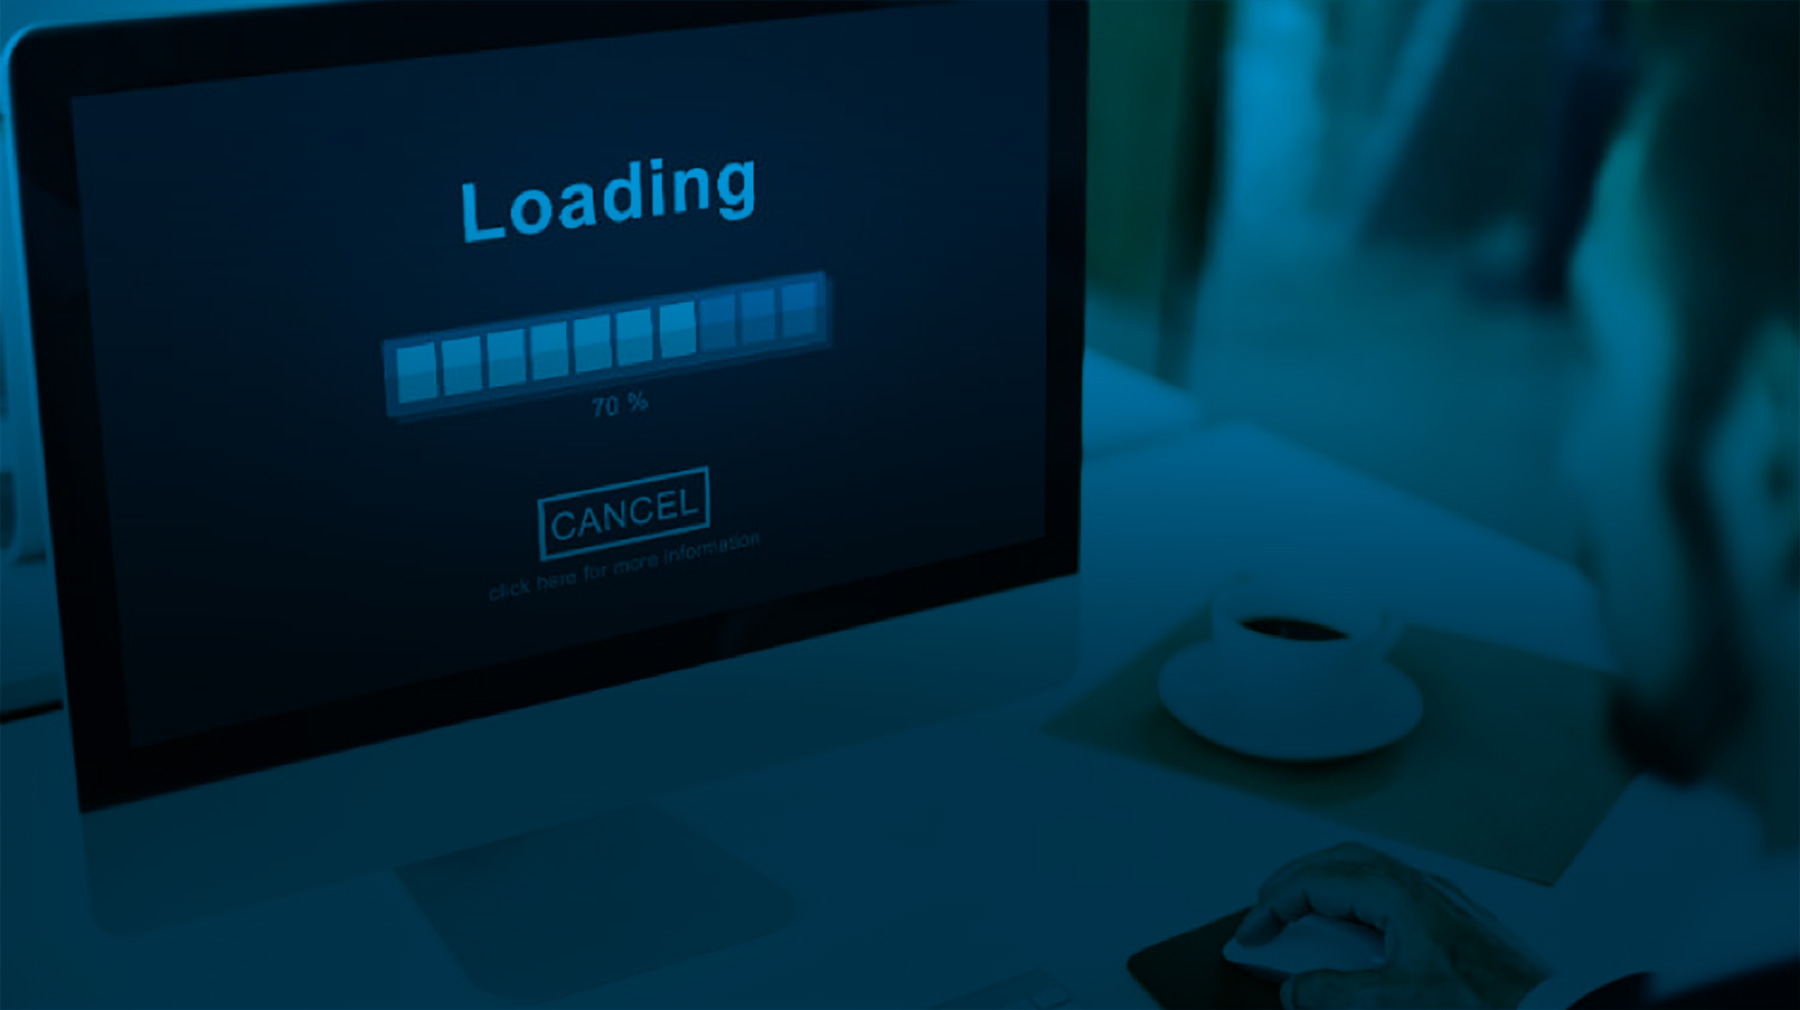 Tips to reduce loading times and improve a website's SEO